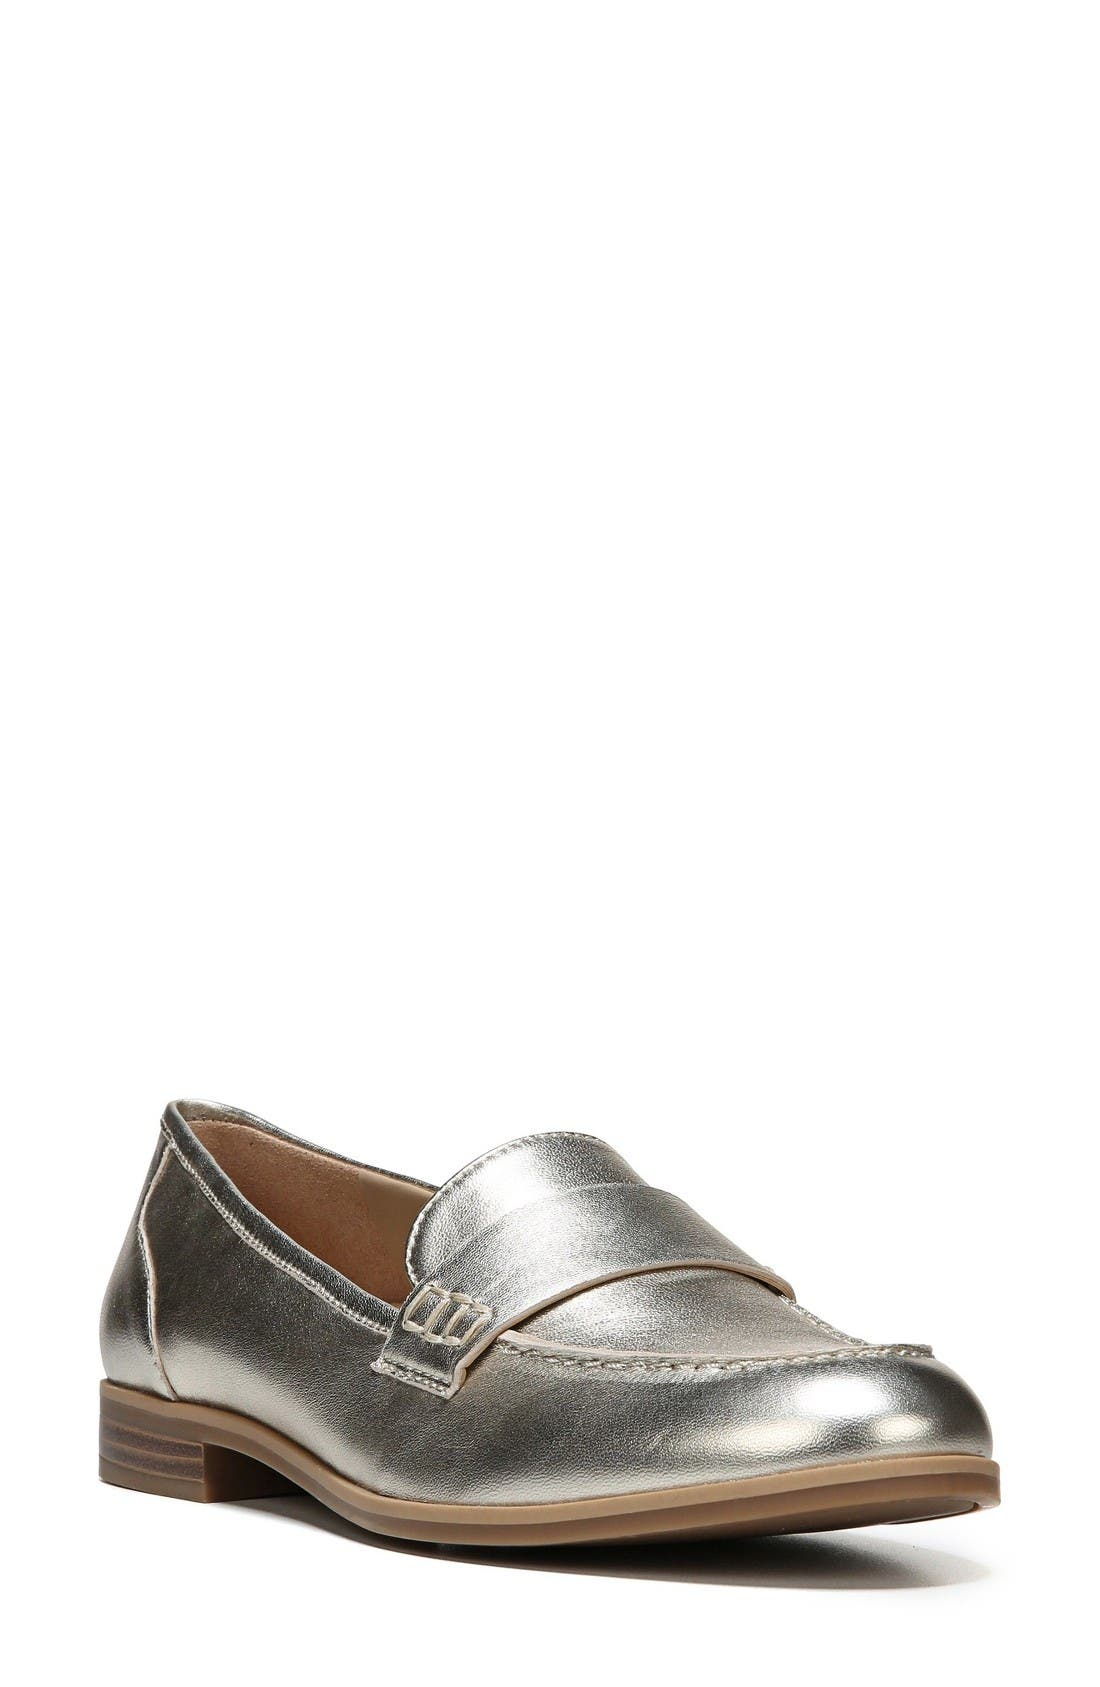 Veronica Loafer,                             Main thumbnail 1, color,                             Platina Leather